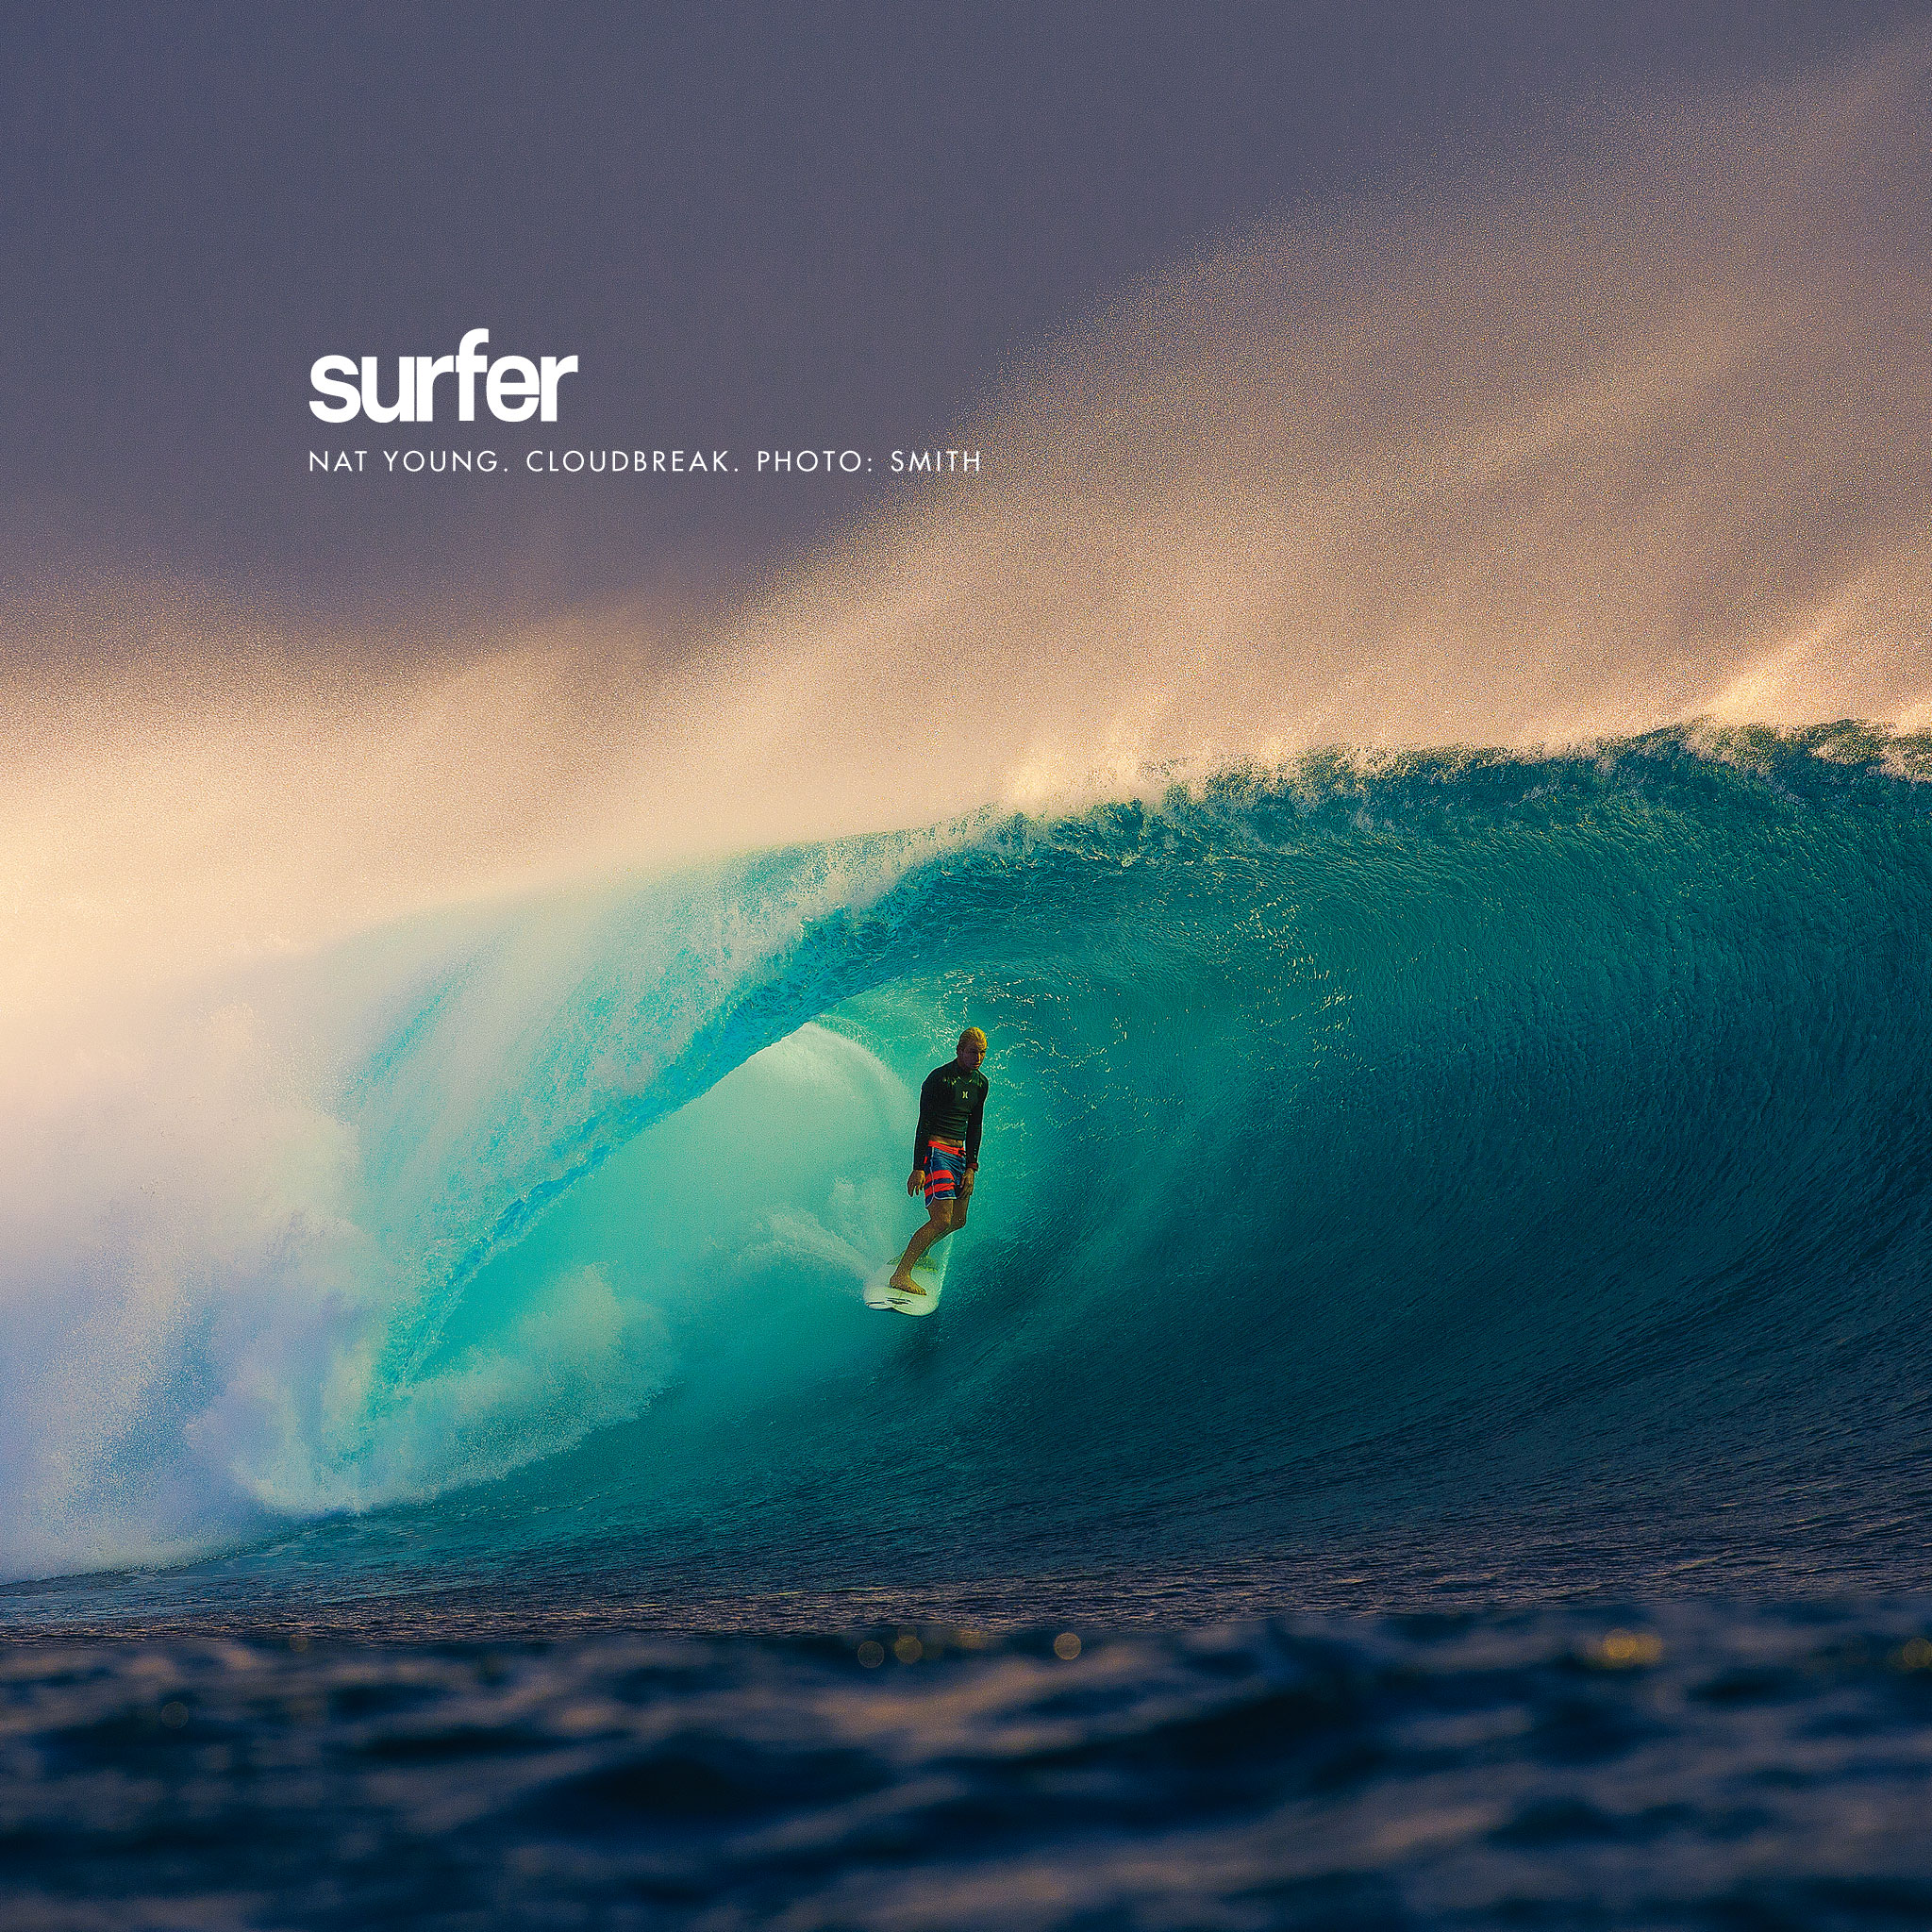 Nat Young Cloudbreak Photo Smith 2048x2048